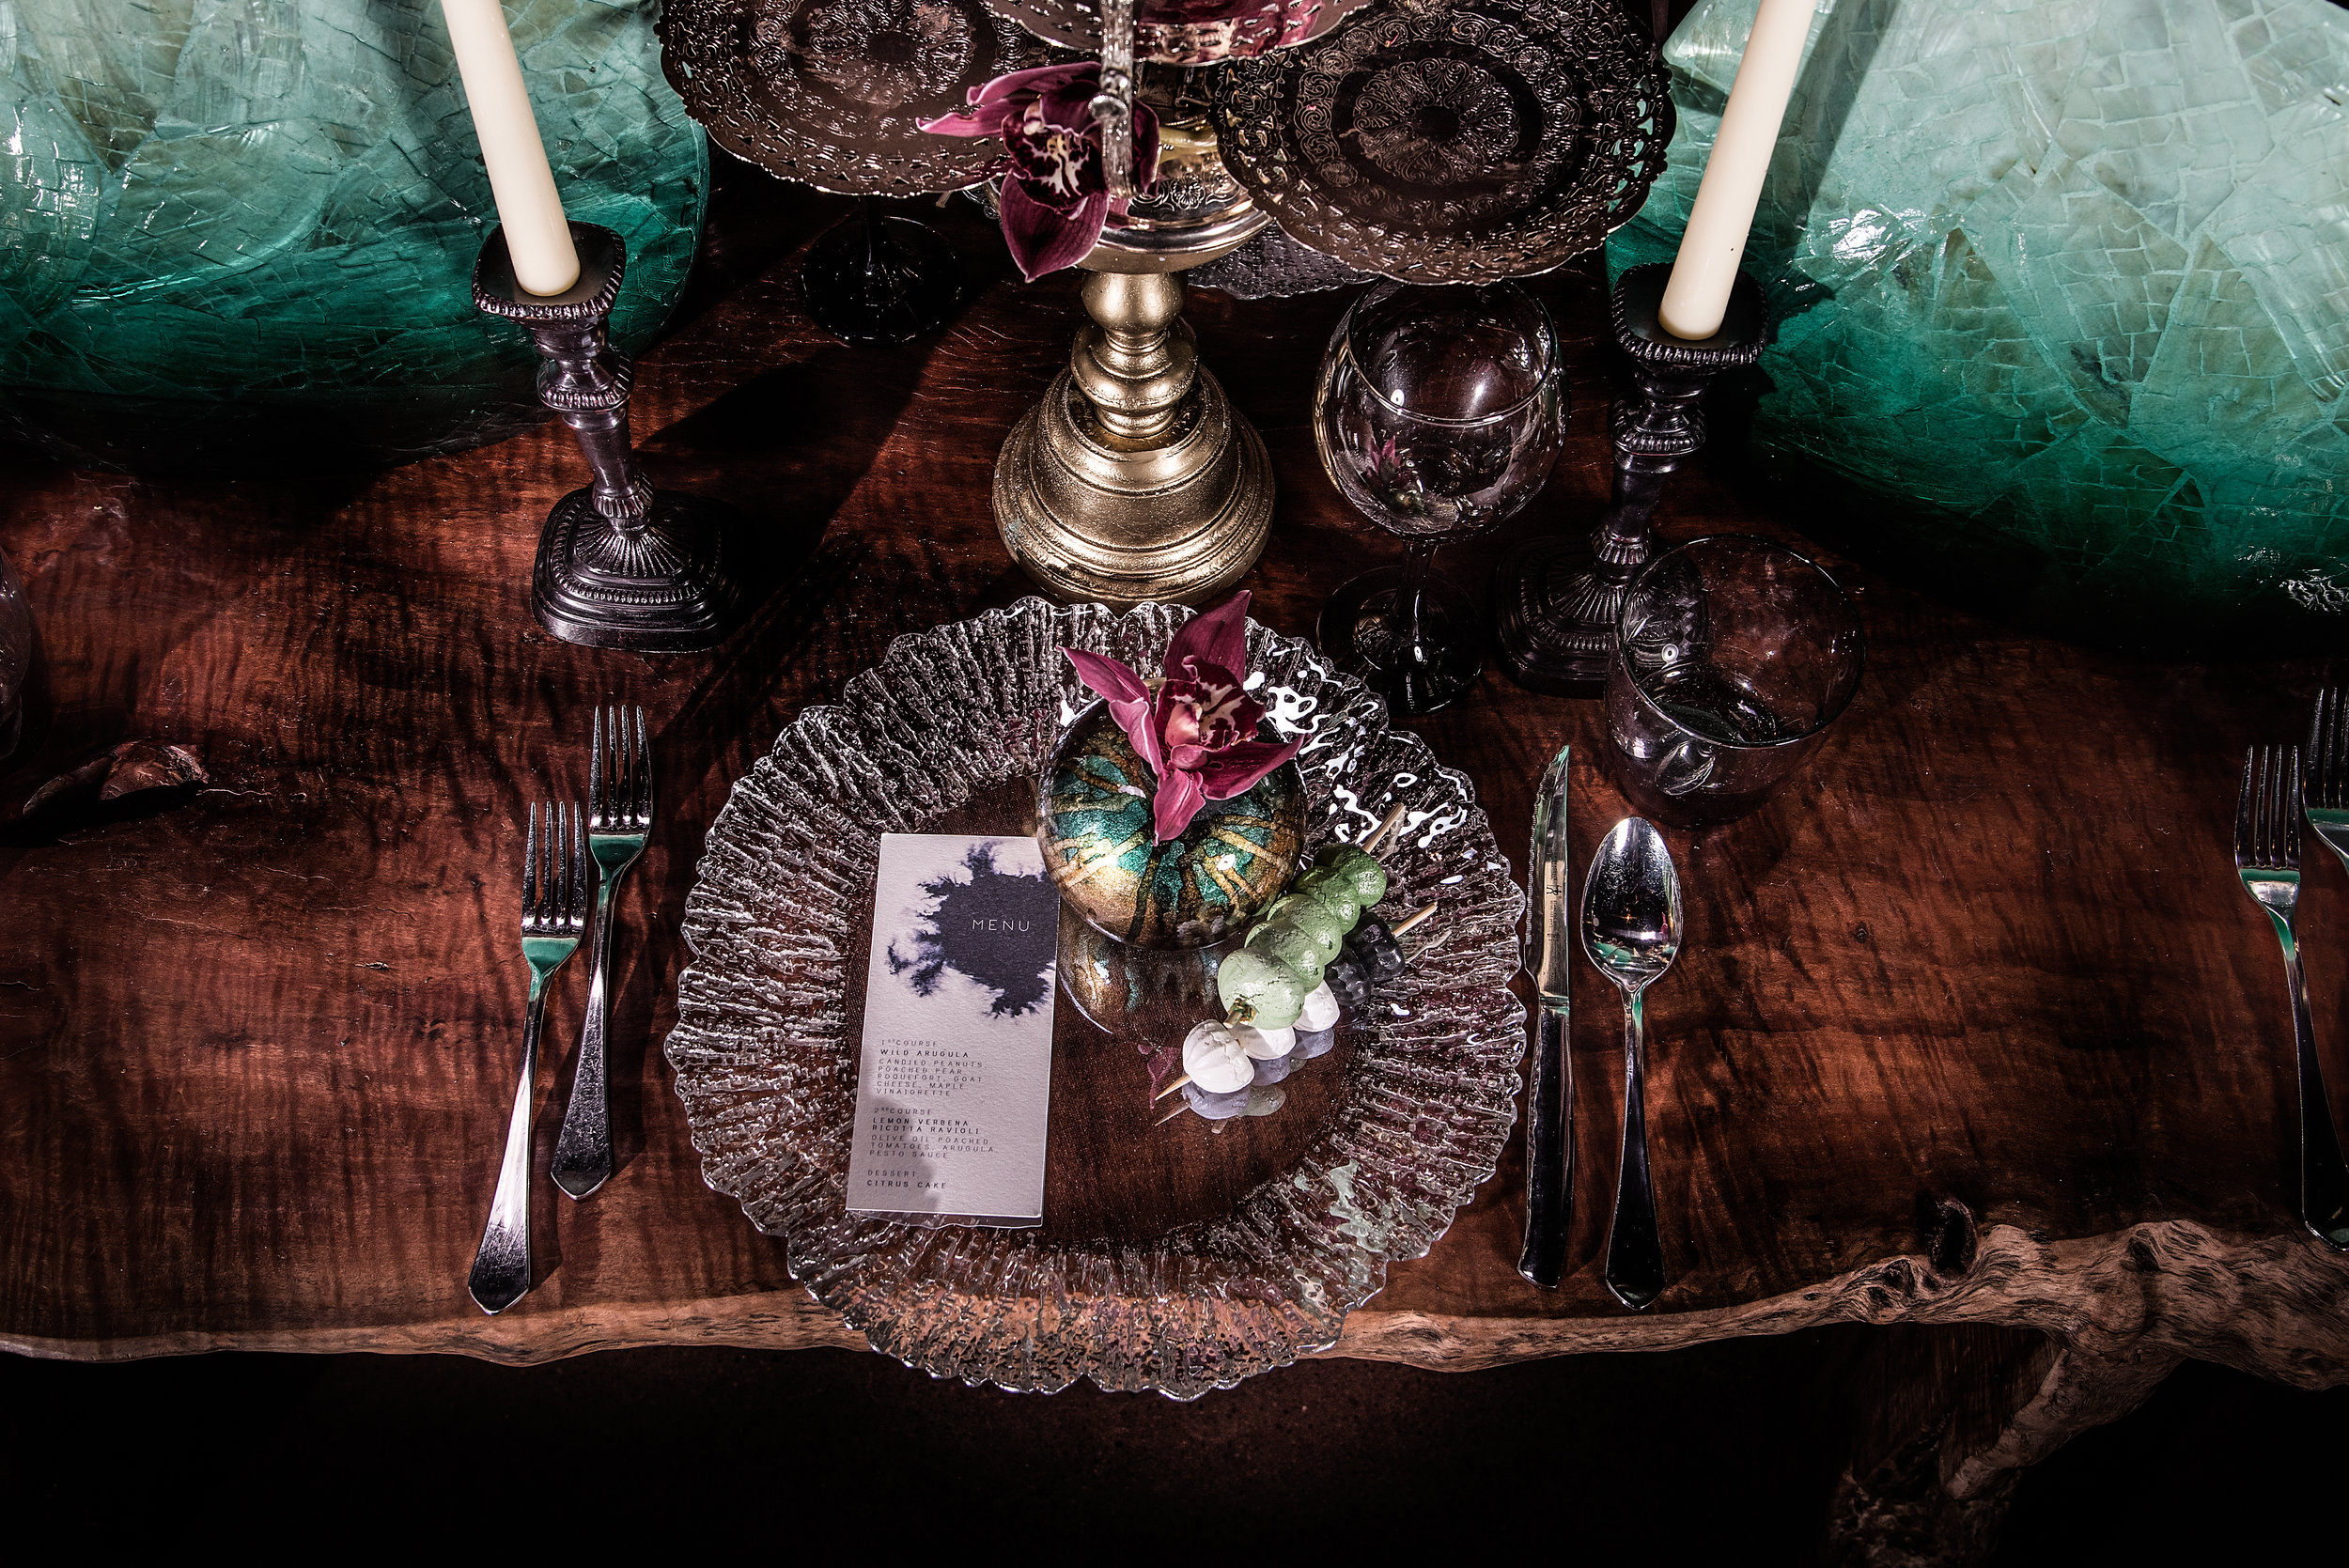 A beautiful shot of our Live Edge Lychee Wood dining table all decked out with wedding place settings. I am in love.